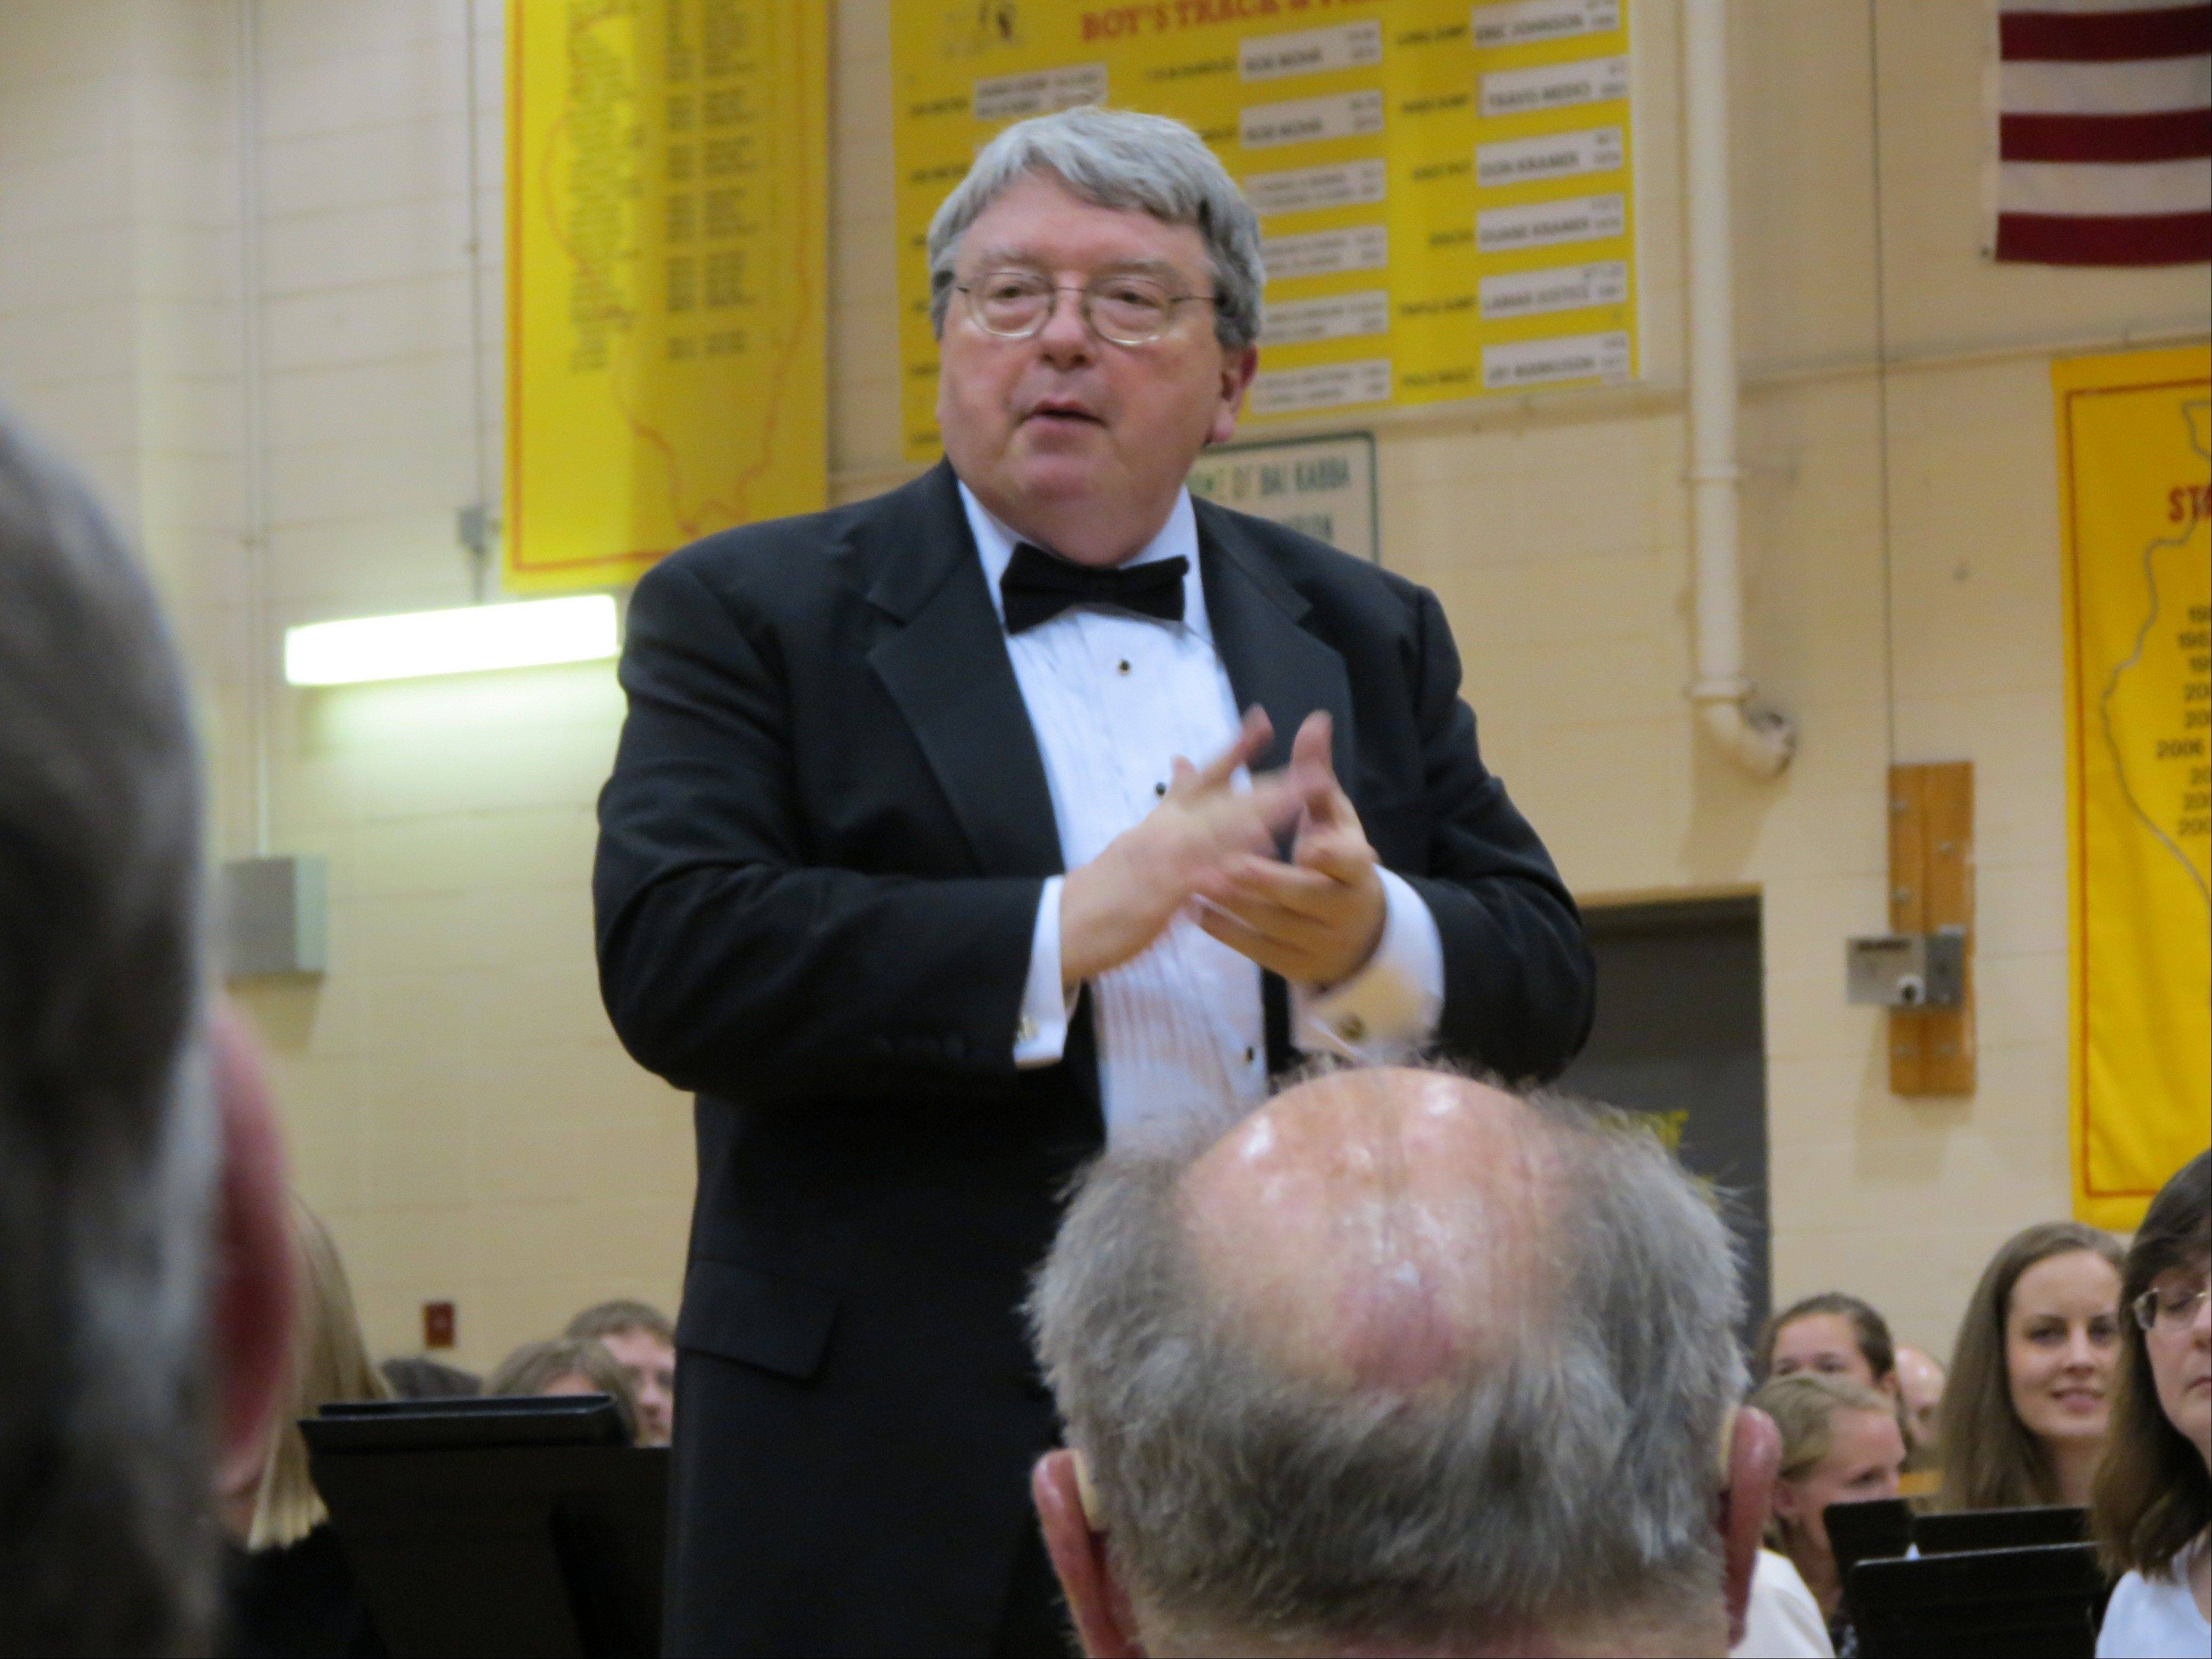 Retiring Batavia High School music teacher and band director was honored last weekend at an alumni concert at the high school. Heath has had a great impact on the students, and the community as a whole.